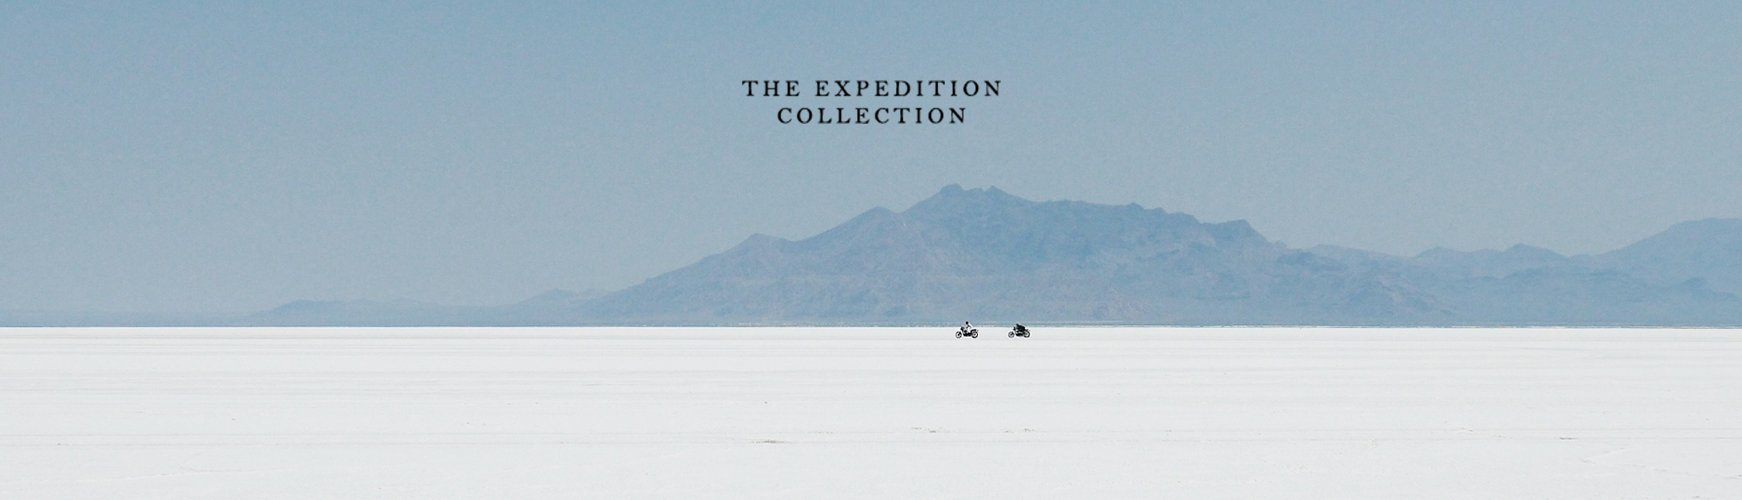 Malle-London-Expedition-Collection-slider